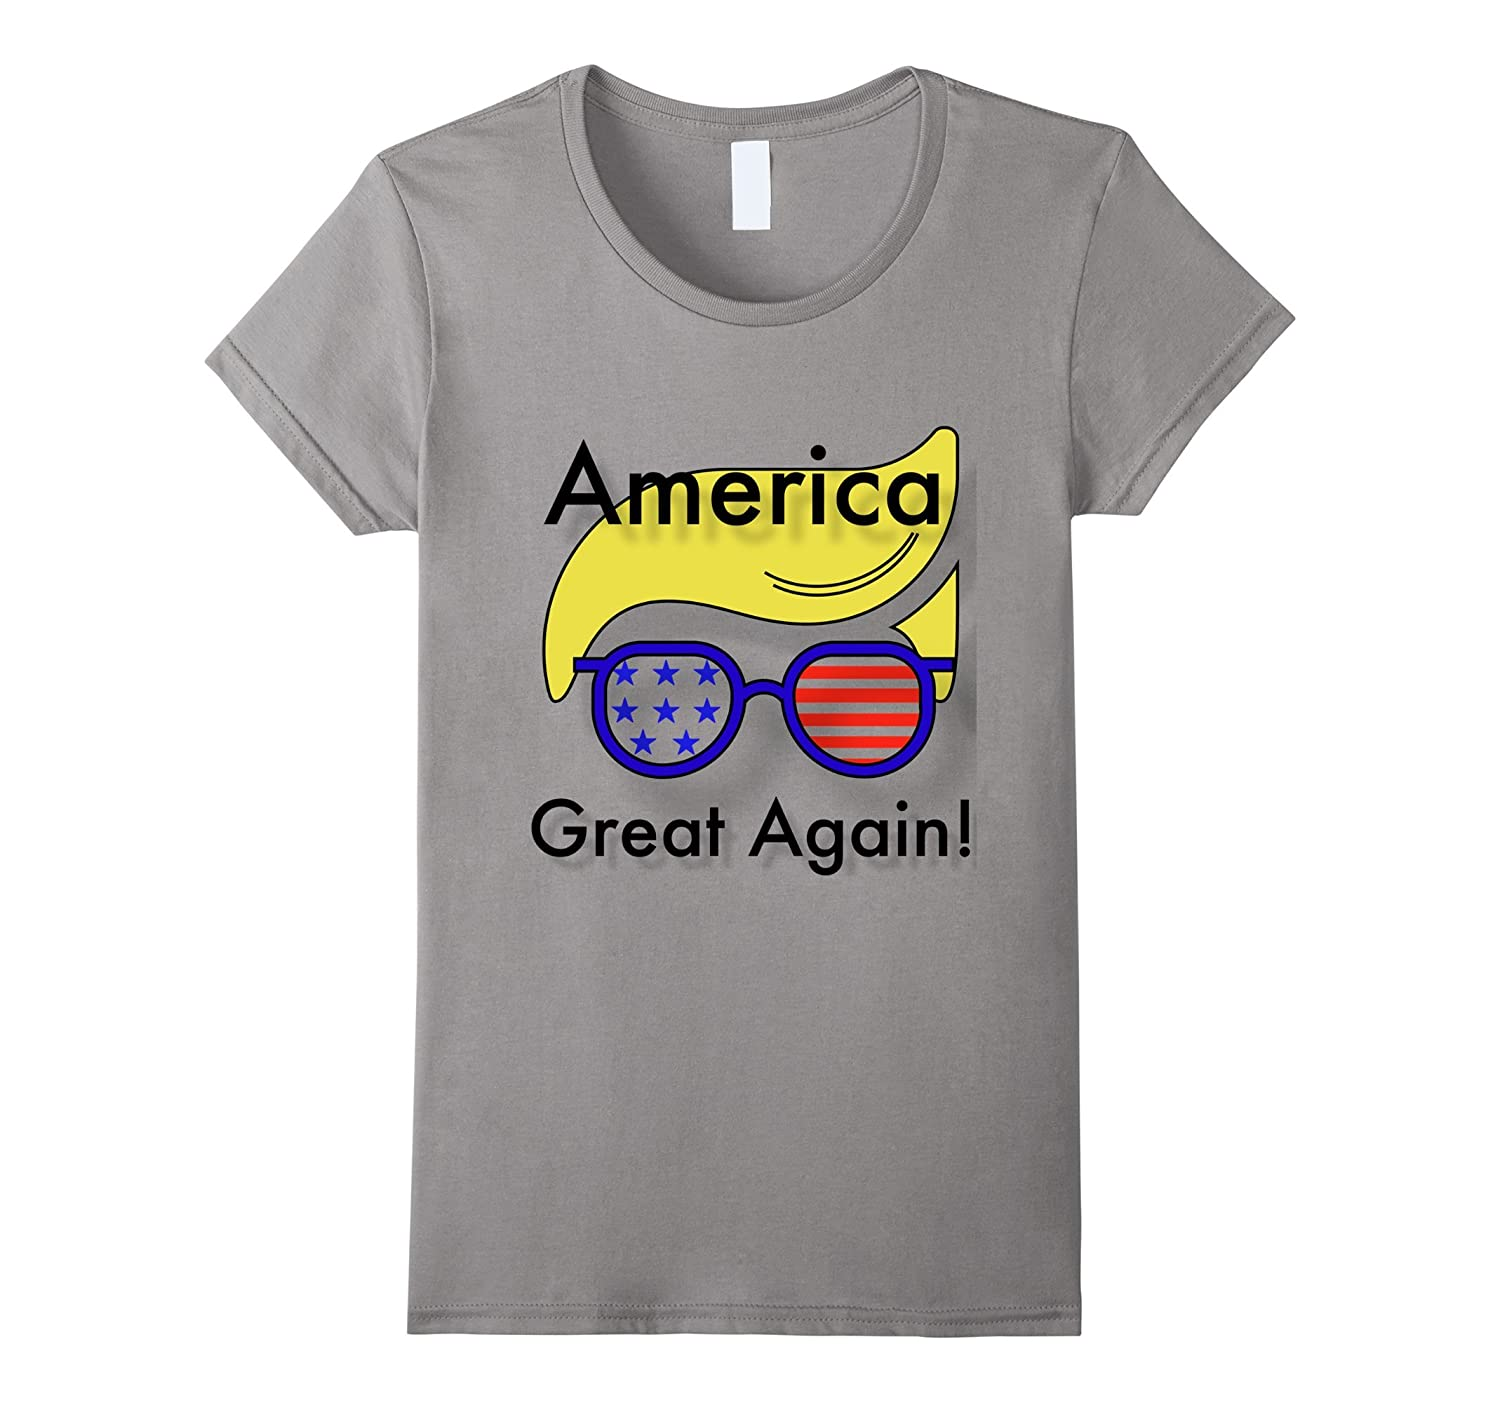 America Great Again, Trump T-Shirt with flag, combover